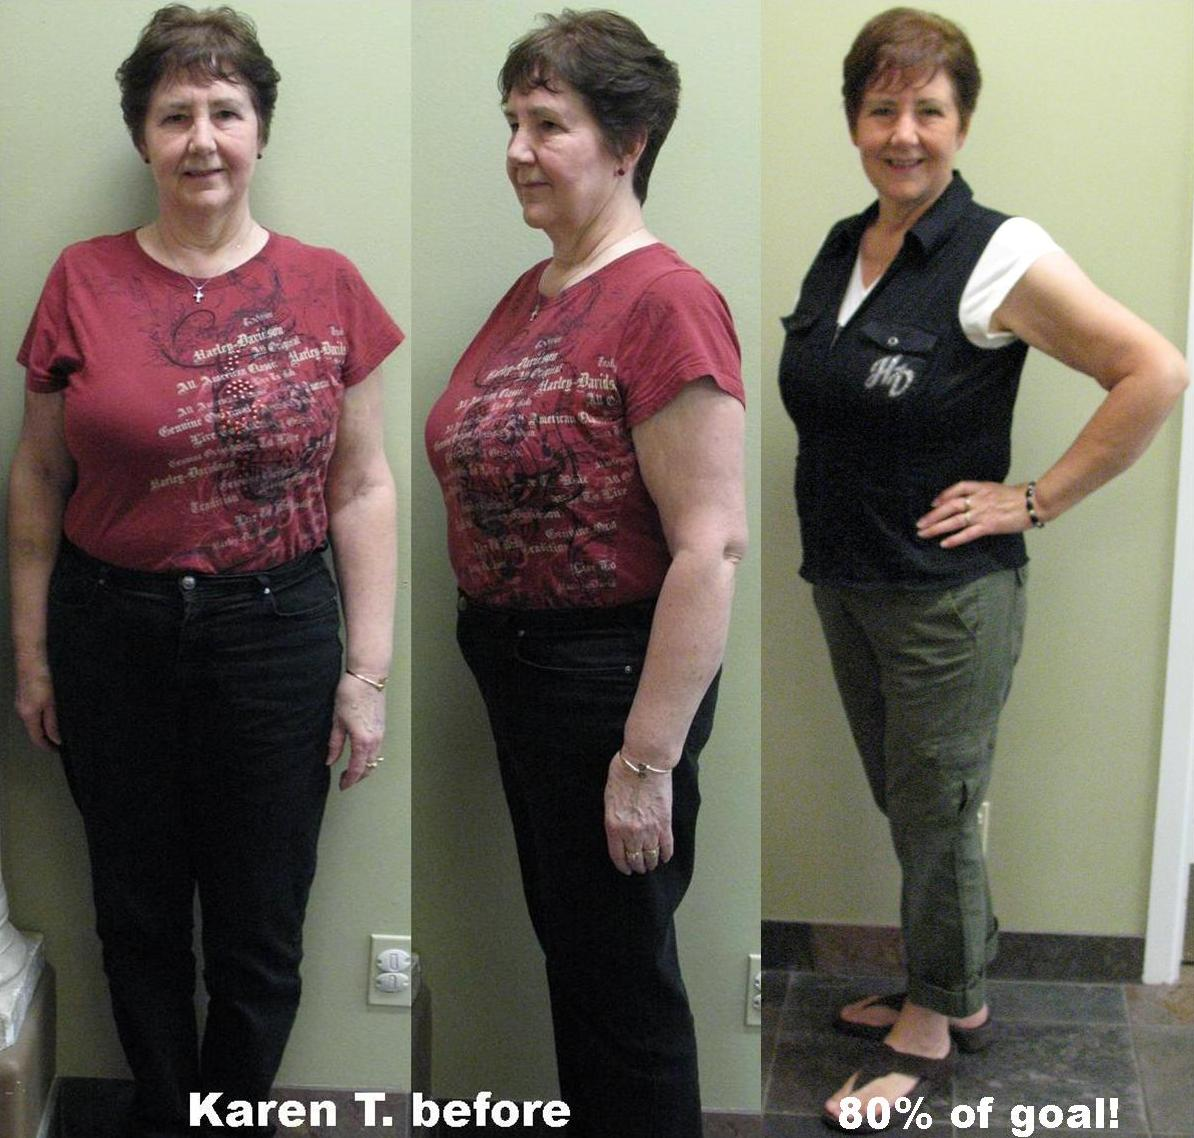 Nutrisystem after hcg - Protein shake 90 day challenge